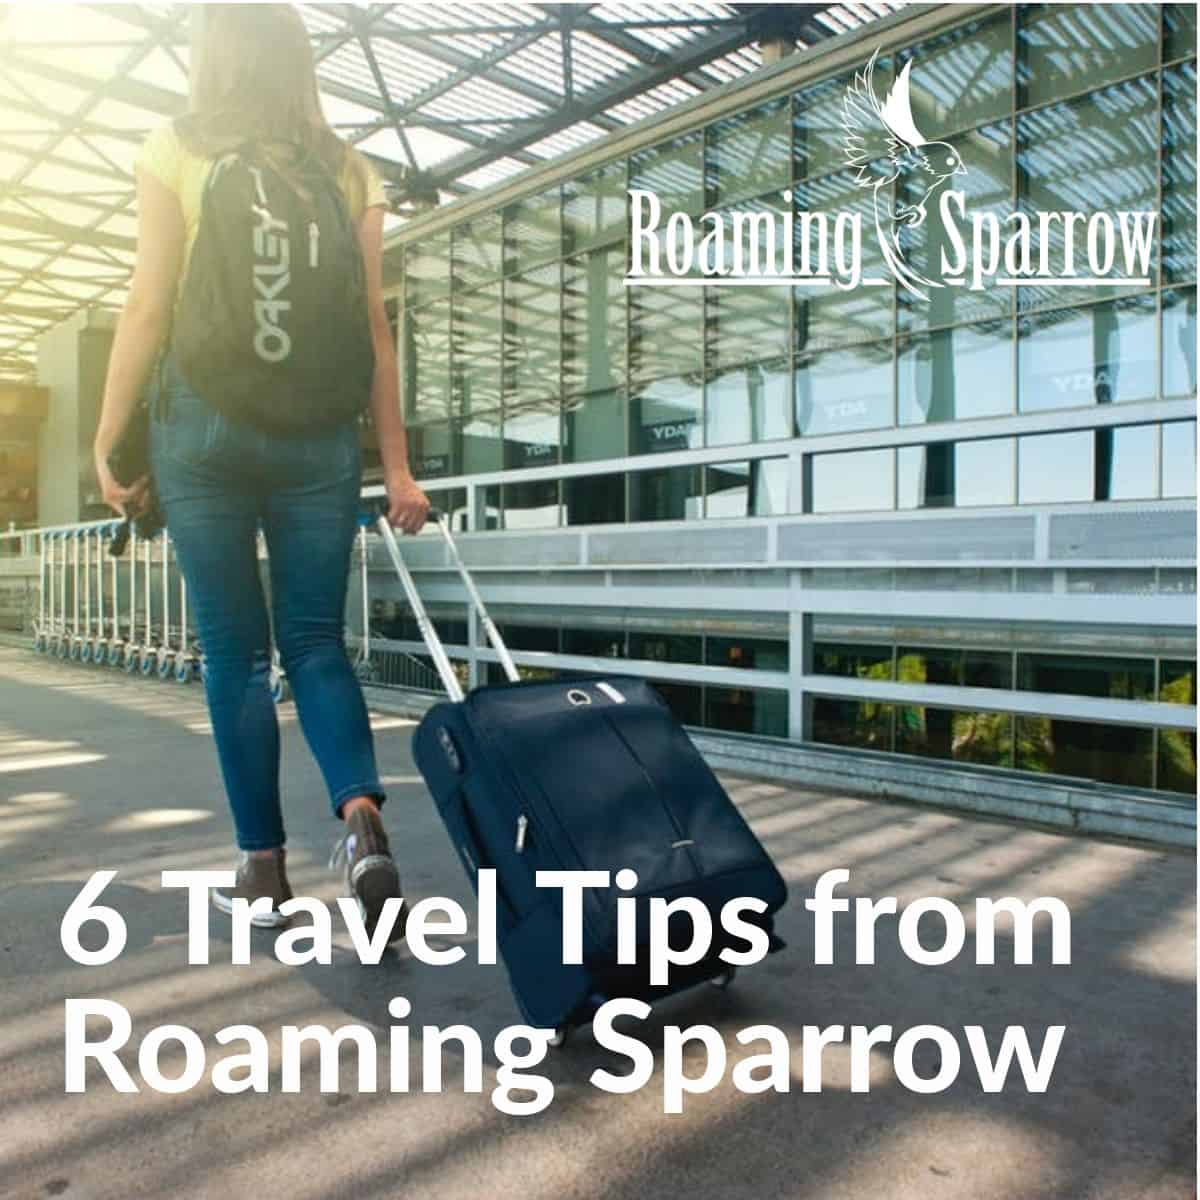 6 Travel Tips from Roaming Sparrow